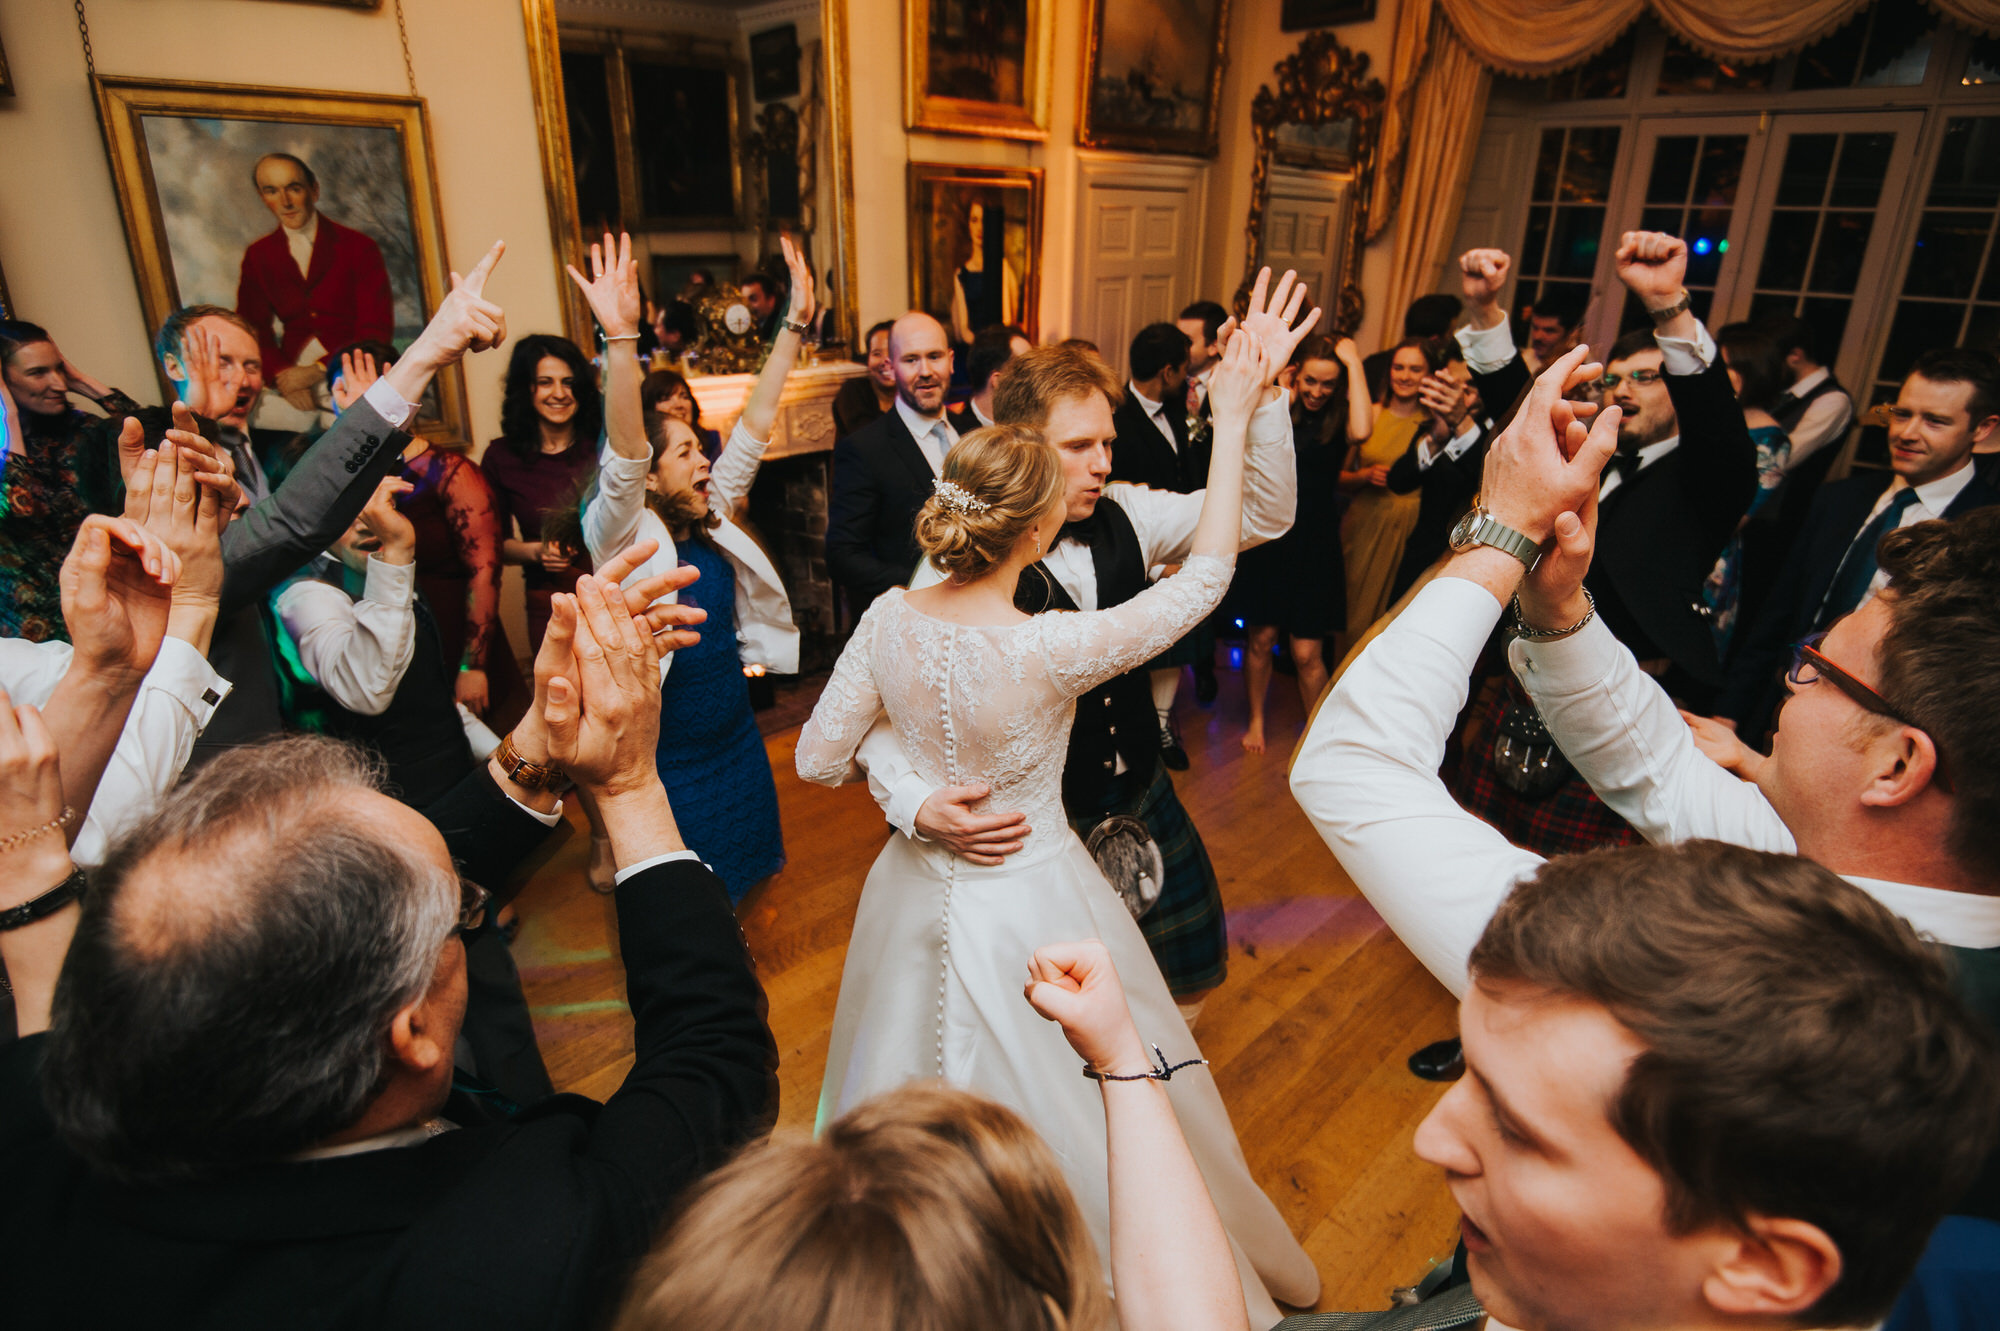 Guests dance around the bride and groom at a maunsel house wedding